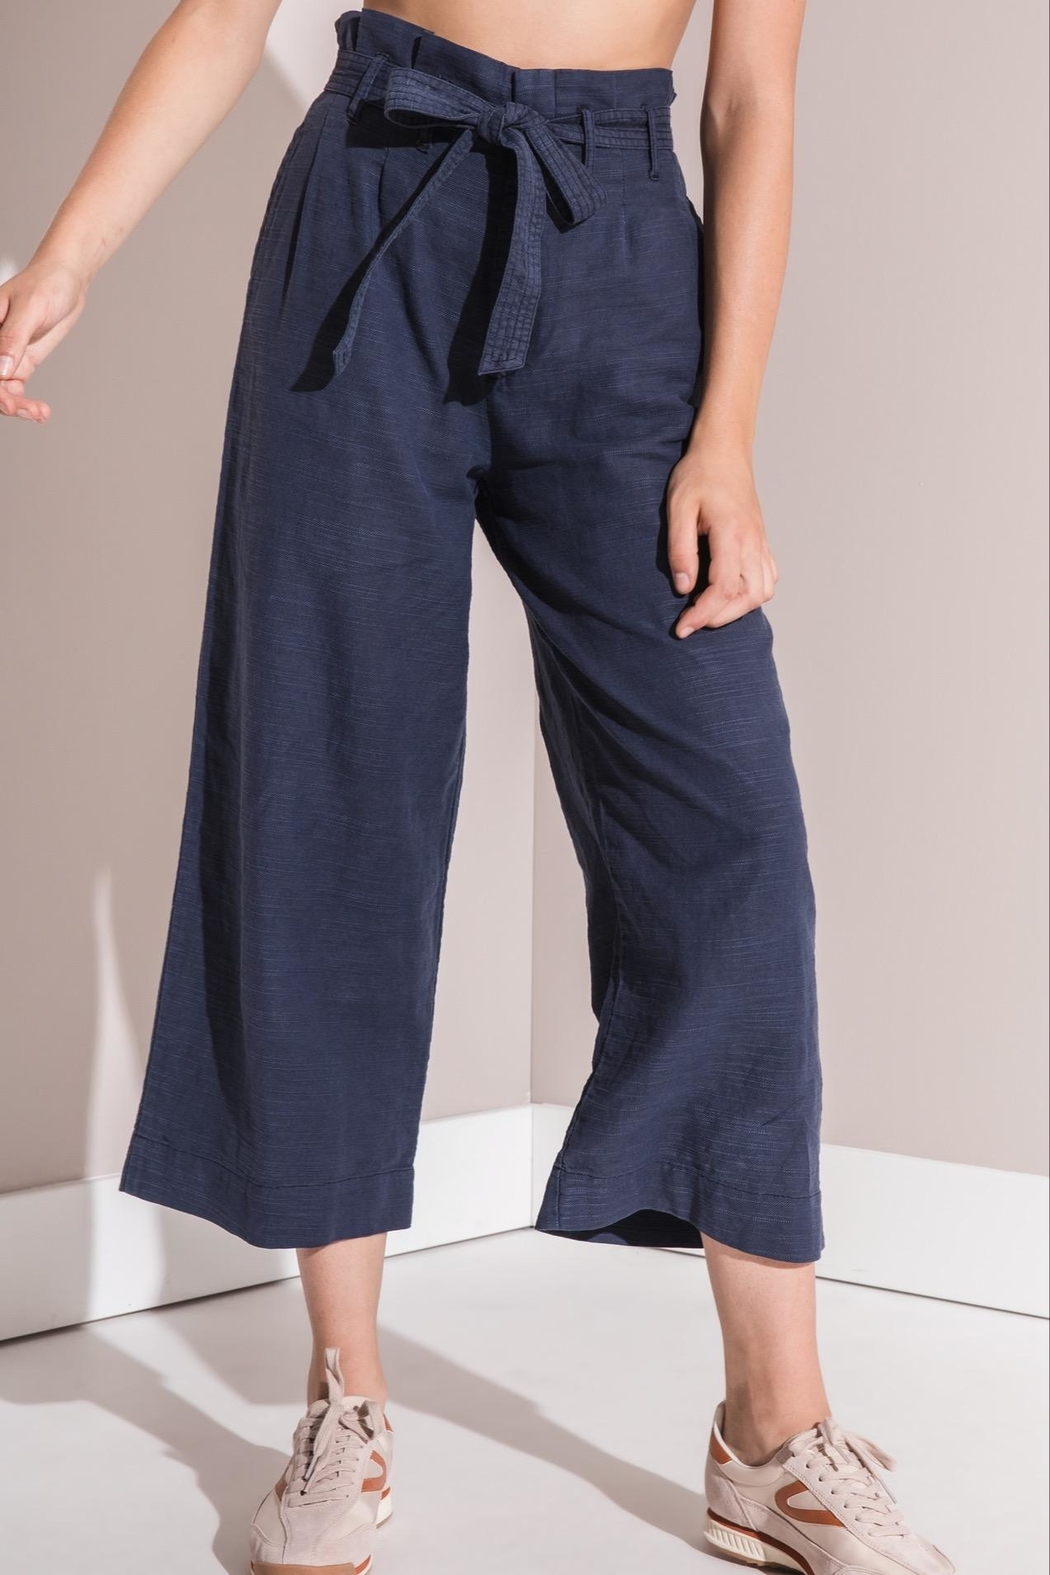 rag poets Cropped Paperbag Pants - Front Cropped Image